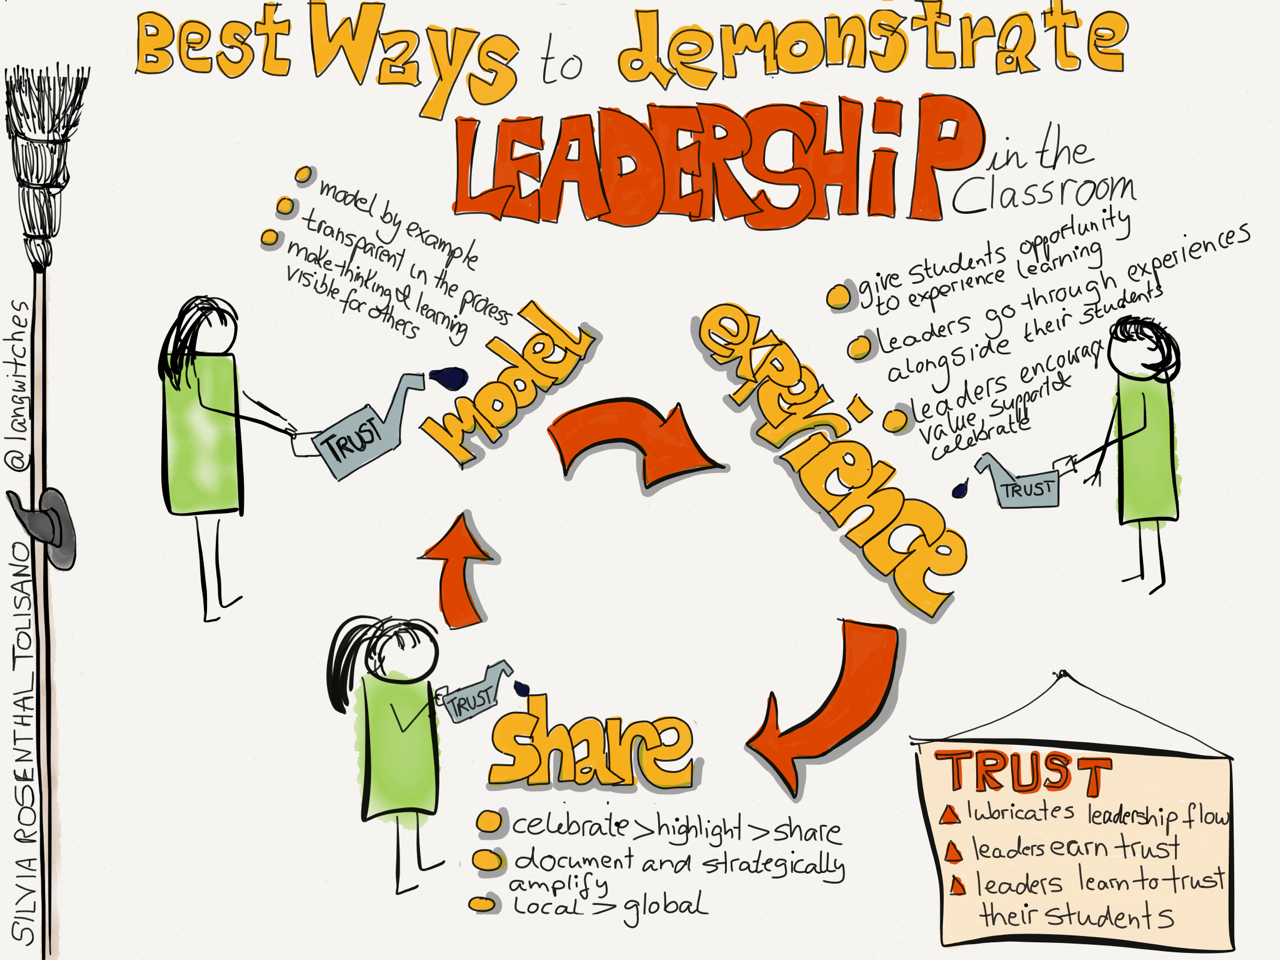 what are the best ways a teacher can demonstrate leadership in the